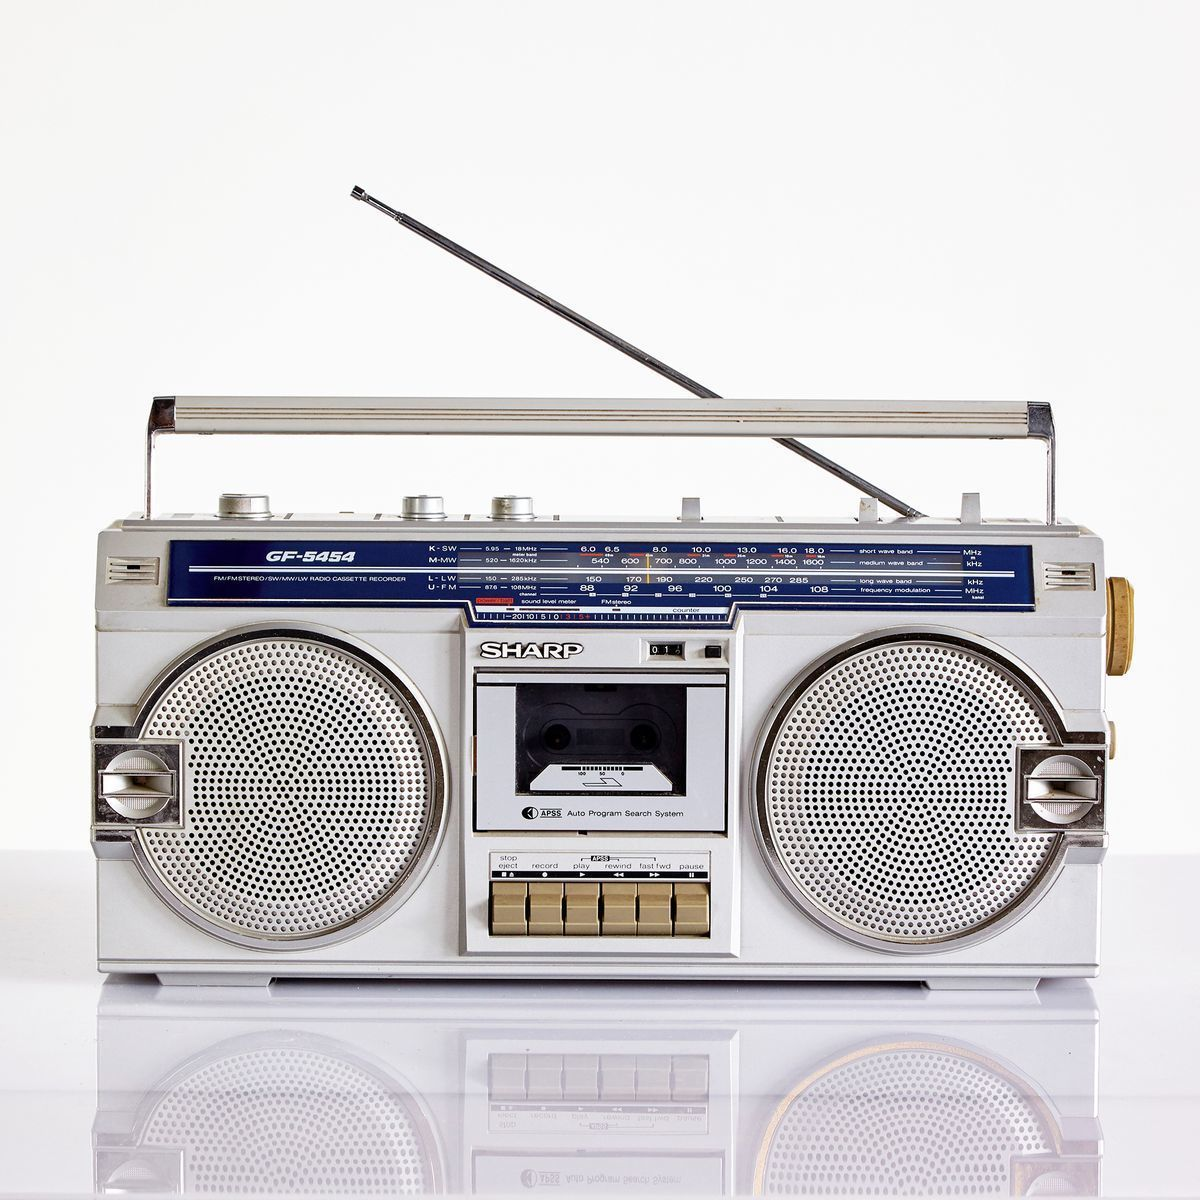 Vintage cassette player from Sharp